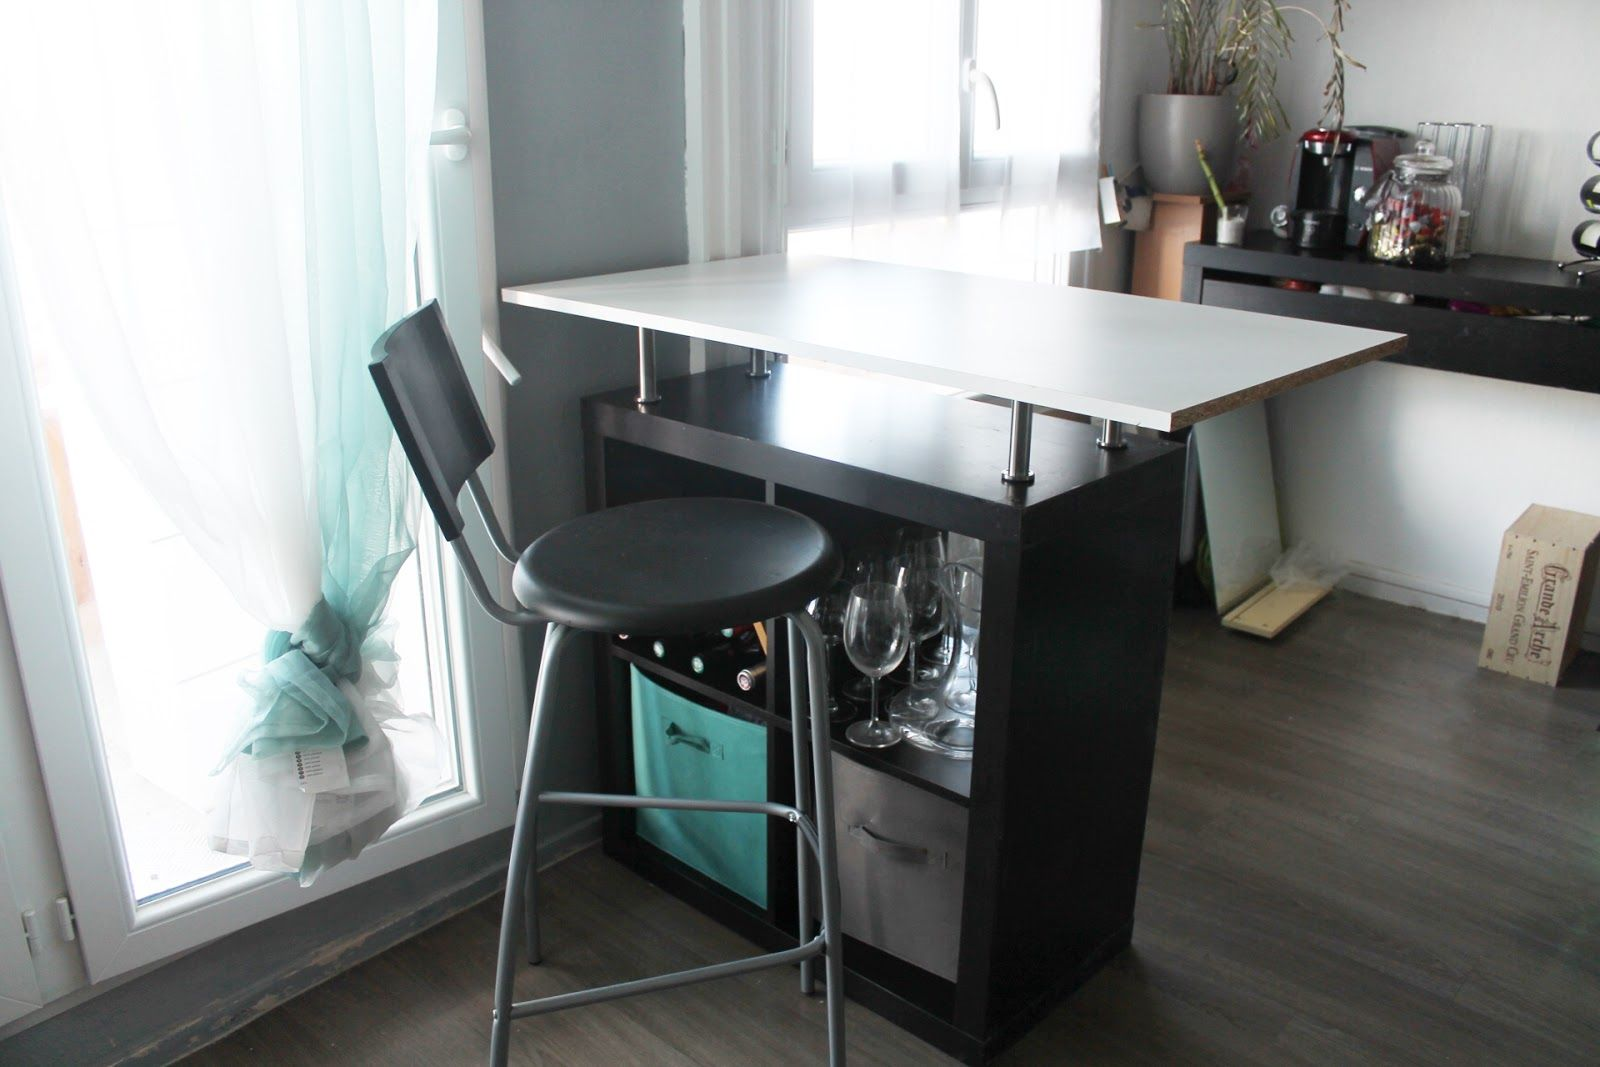 transformer un meuble ikea en bar bureau pinterest. Black Bedroom Furniture Sets. Home Design Ideas